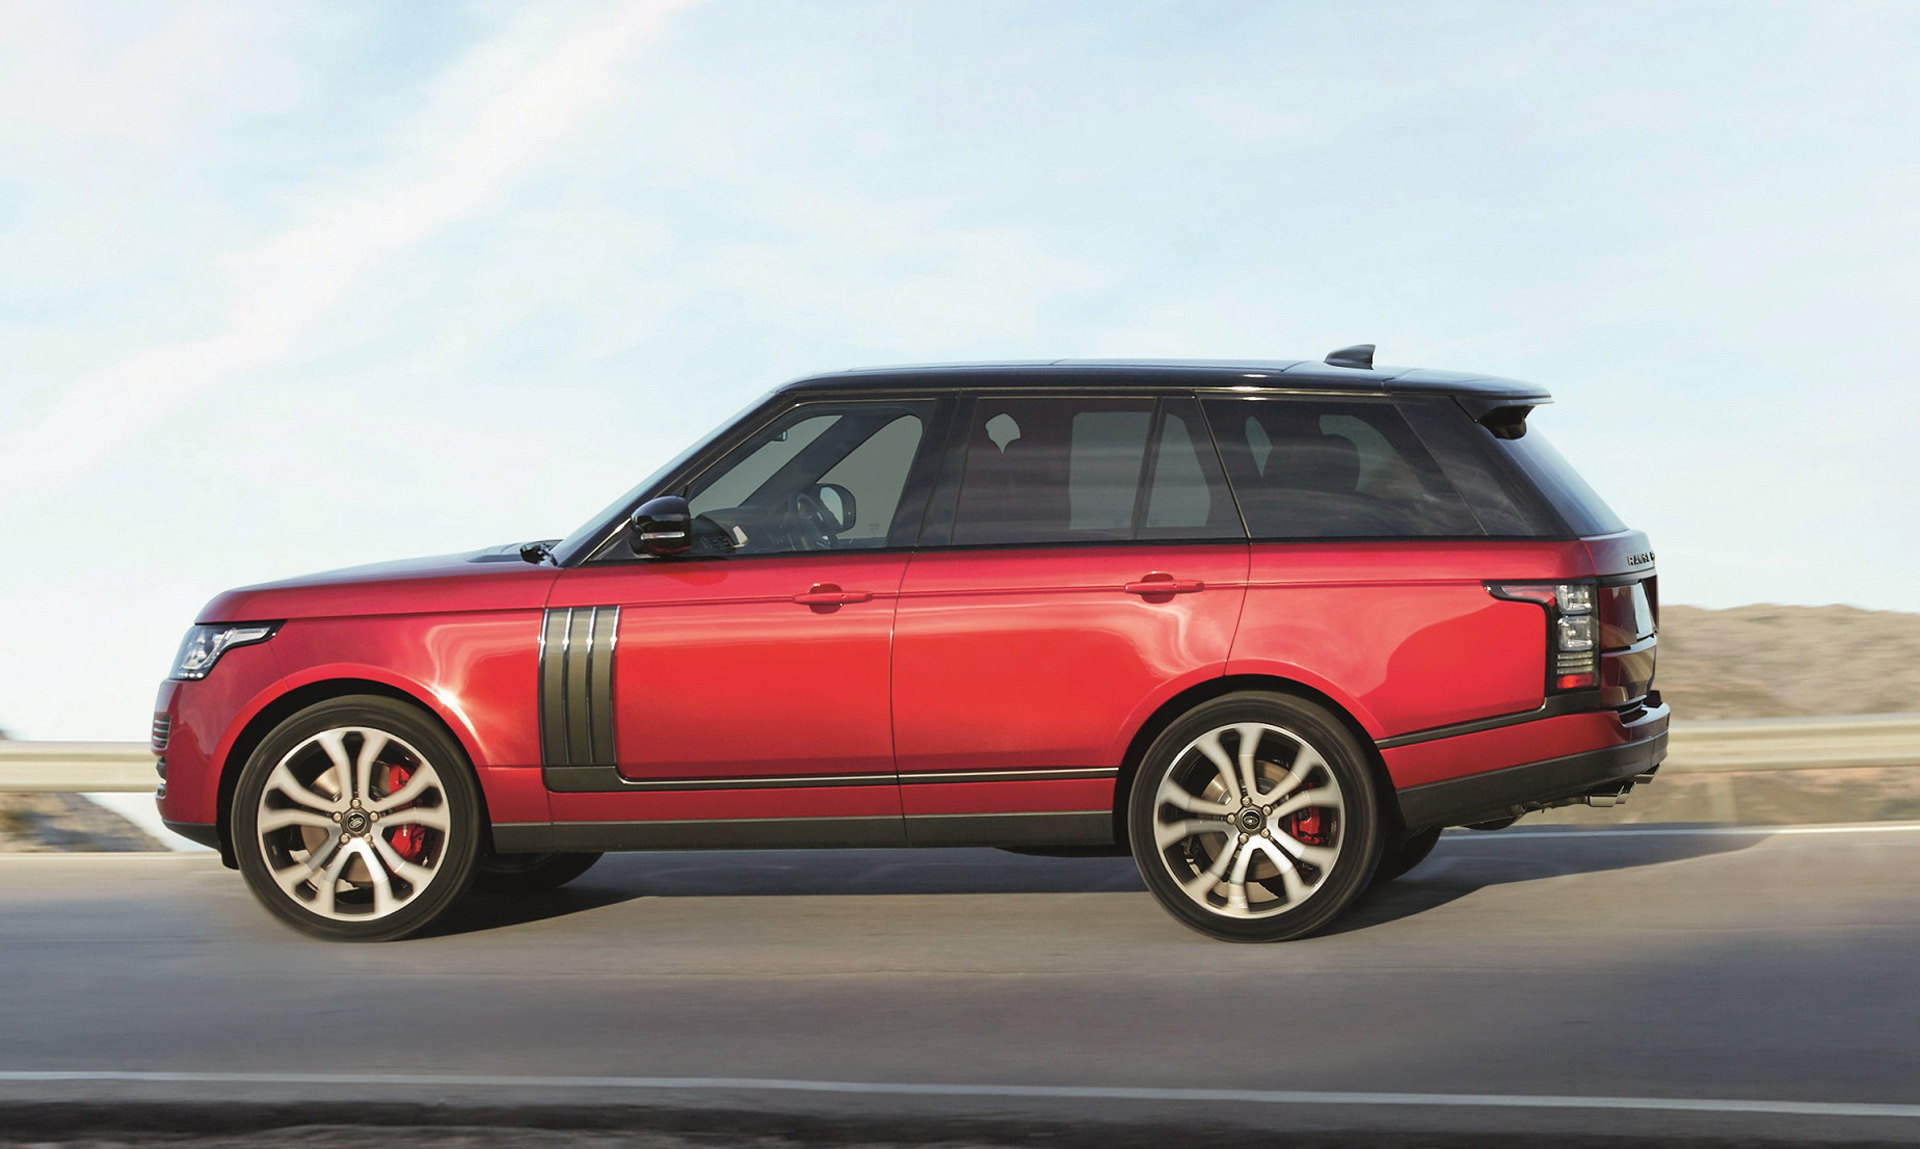 2017 Land Rover Range Rover Gas Mileage The Car Connection